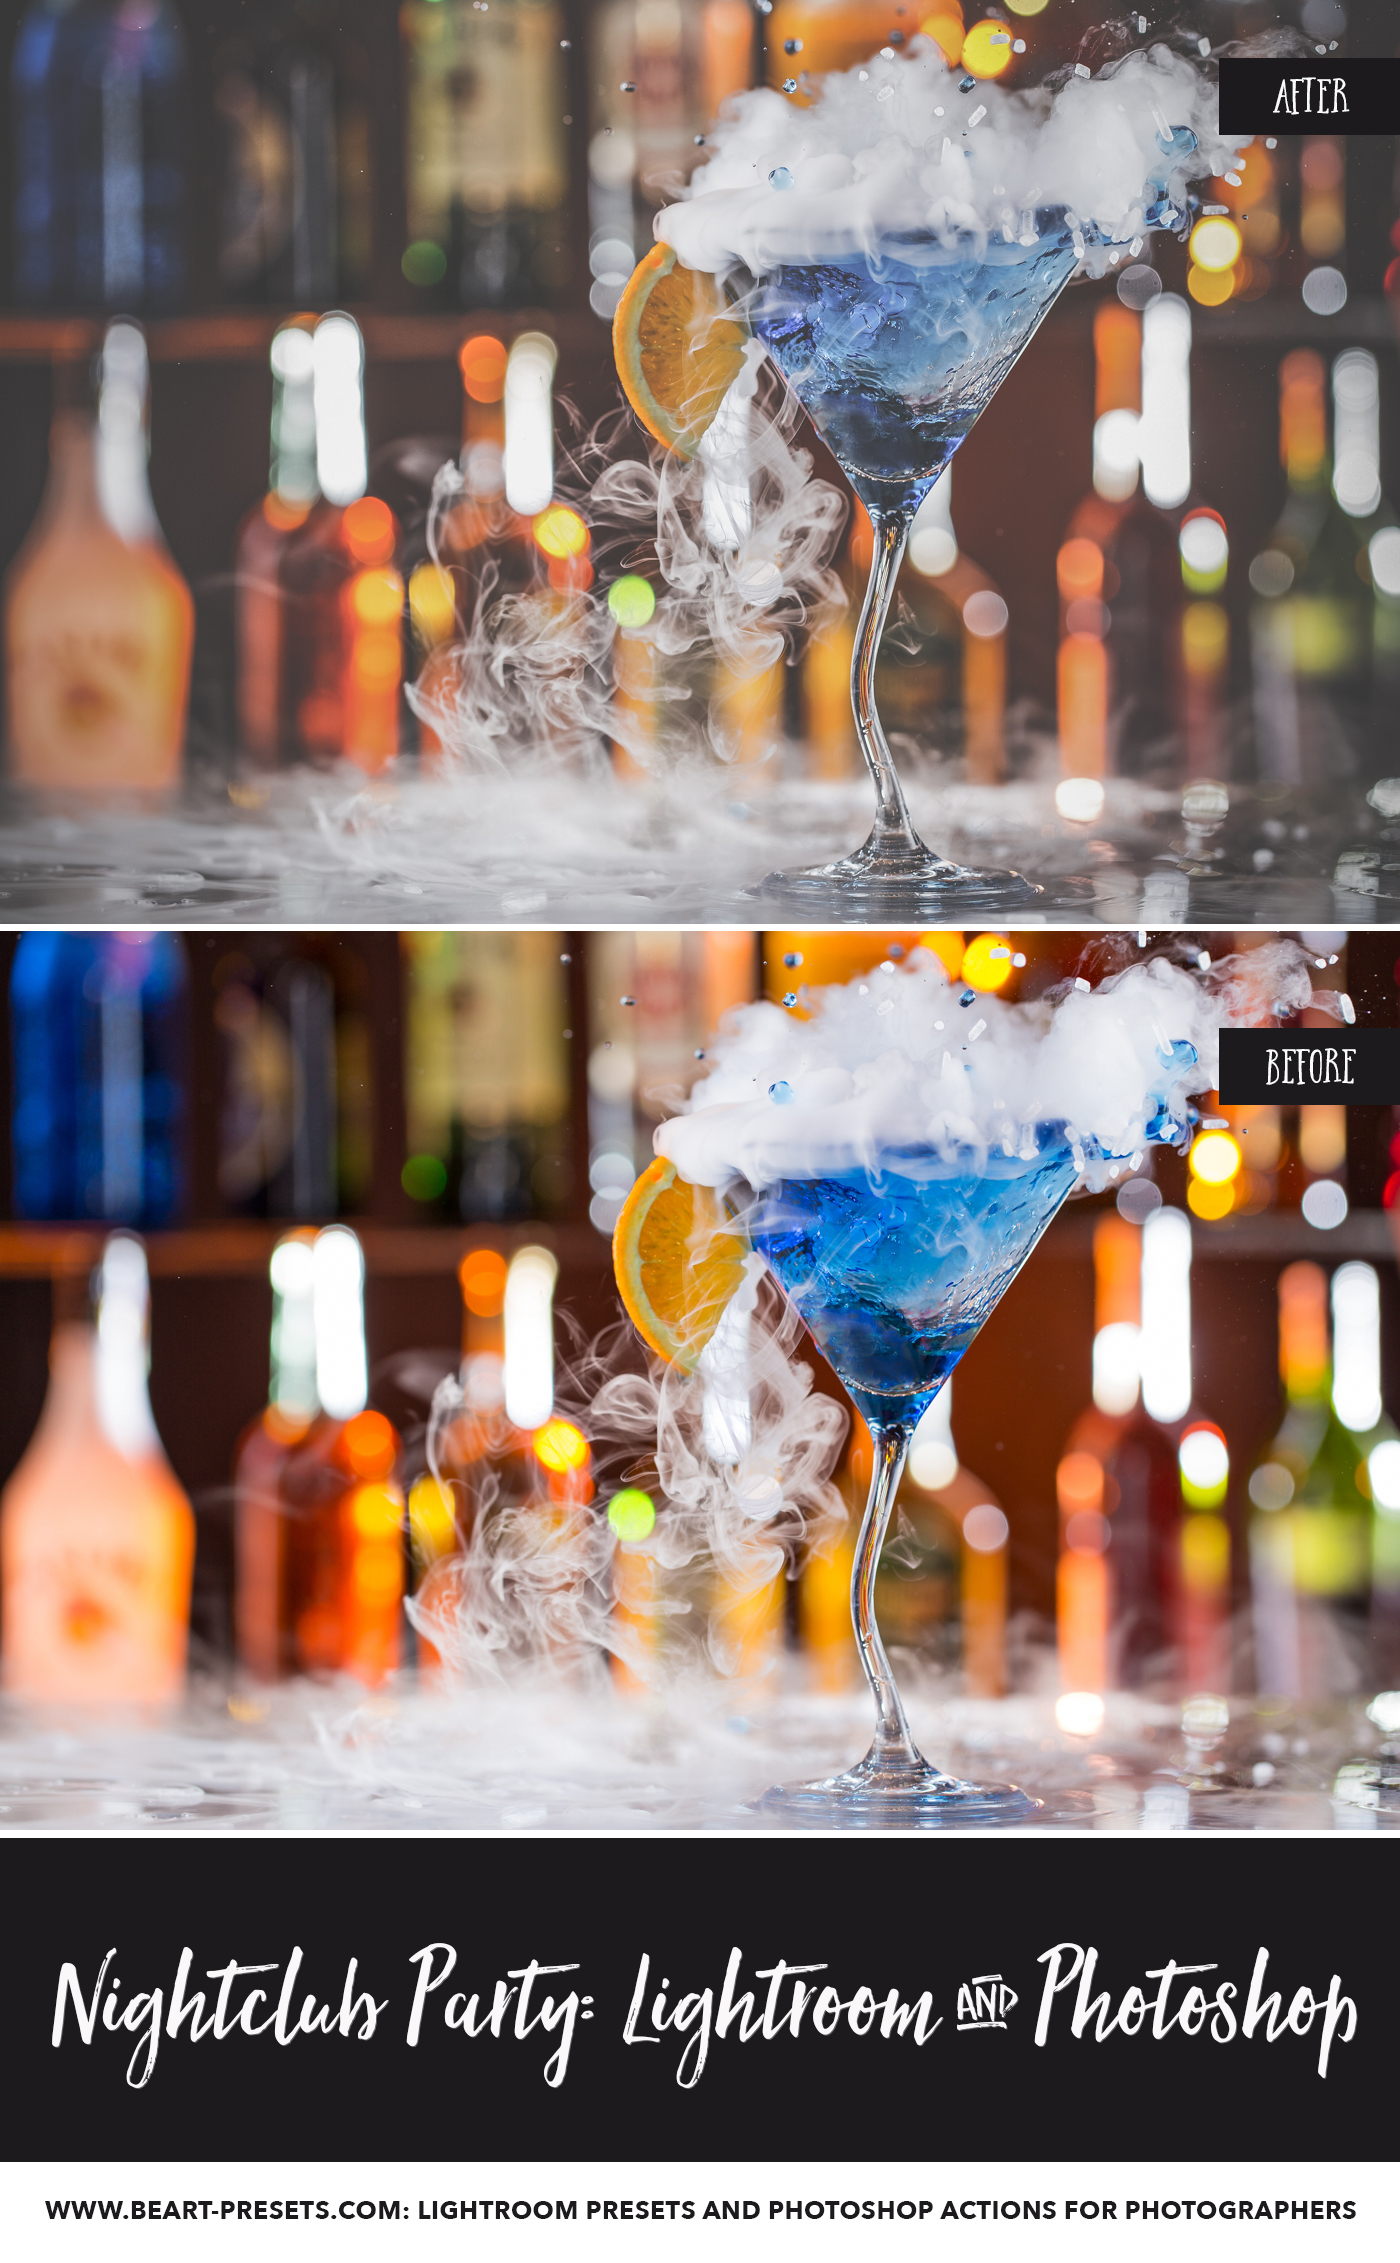 Photoshop actions for making nightclub pictures look professional